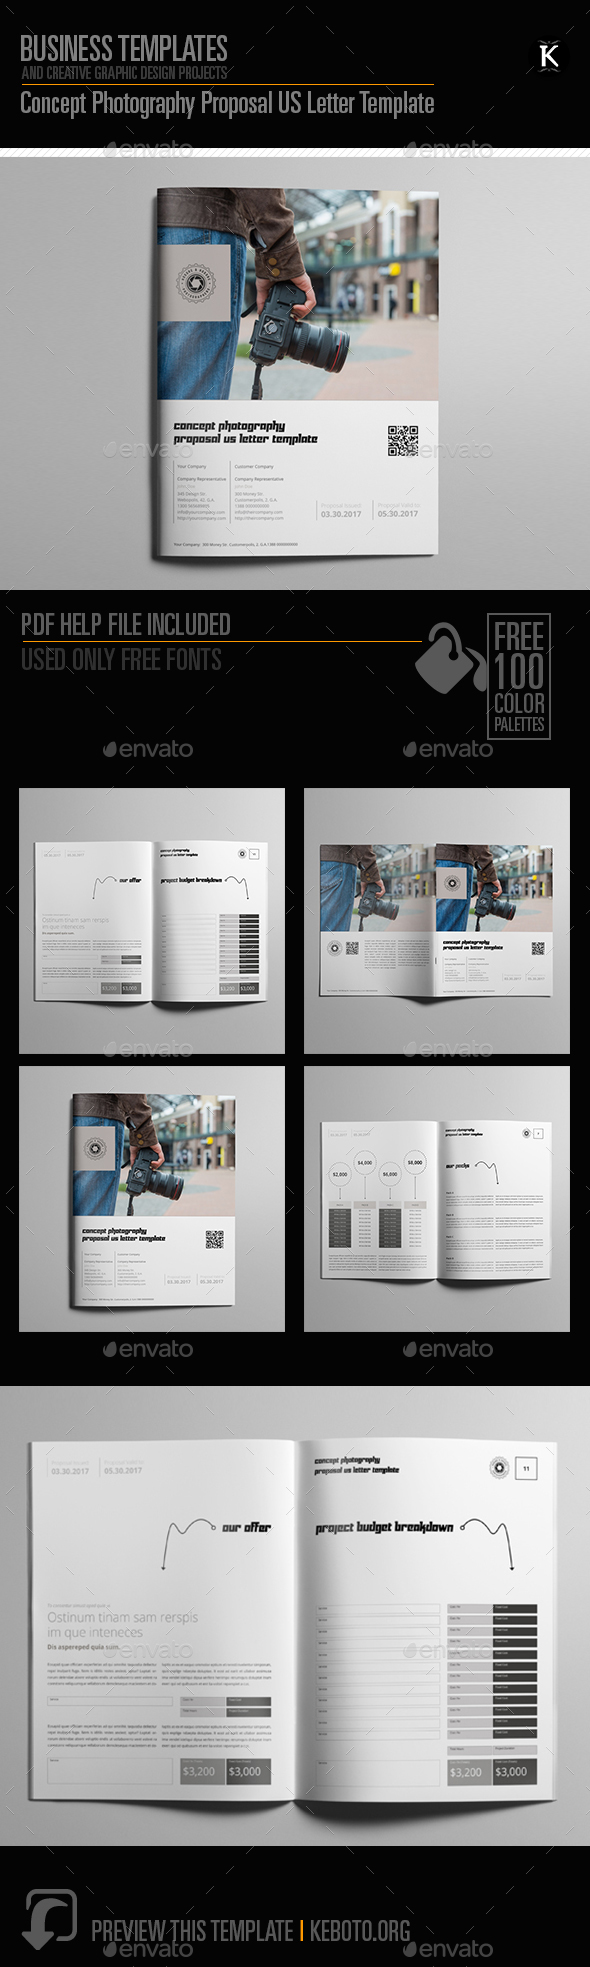 Concept Photography Proposal US Letter Template - Proposals & Invoices Stationery